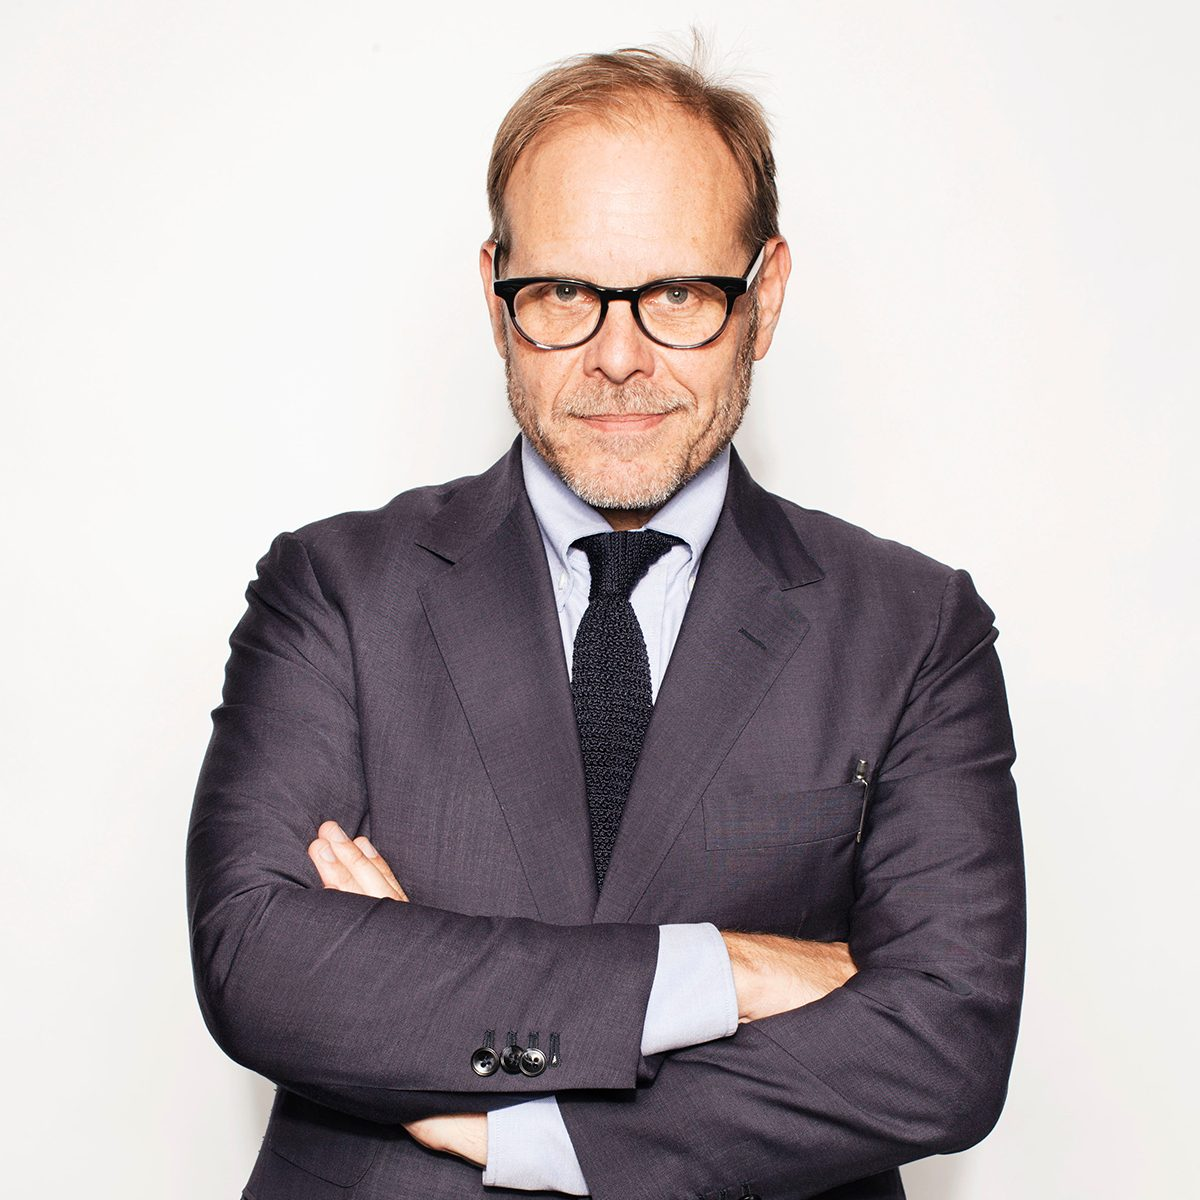 """Mandatory Credit: Photo by Victoria Will/Invision/AP/REX/Shutterstock (9112648e) Alton Brown poses for a portrait in New York to promote his cookbook, """"EveryDayCook: This Time It's Personal,"""" and a live Broadway variety show with a mix of unusual food demonstrations, puppets and songs Alton Brown Portrait Session, New York, USA"""